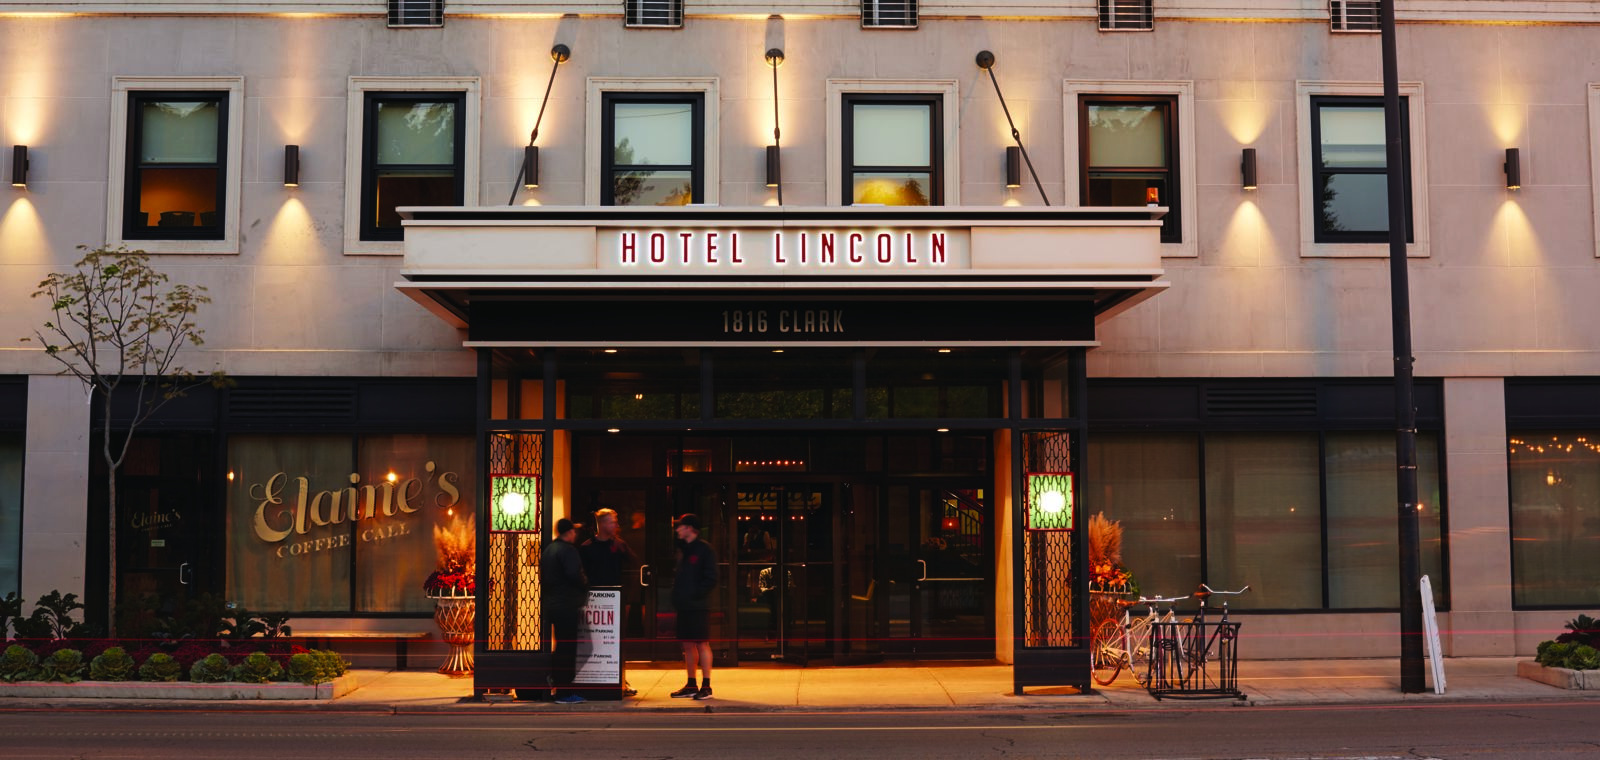 Hotel Lincoln Boutique Hotels Lincoln Park Chicago Near Wrigley Field Hotel